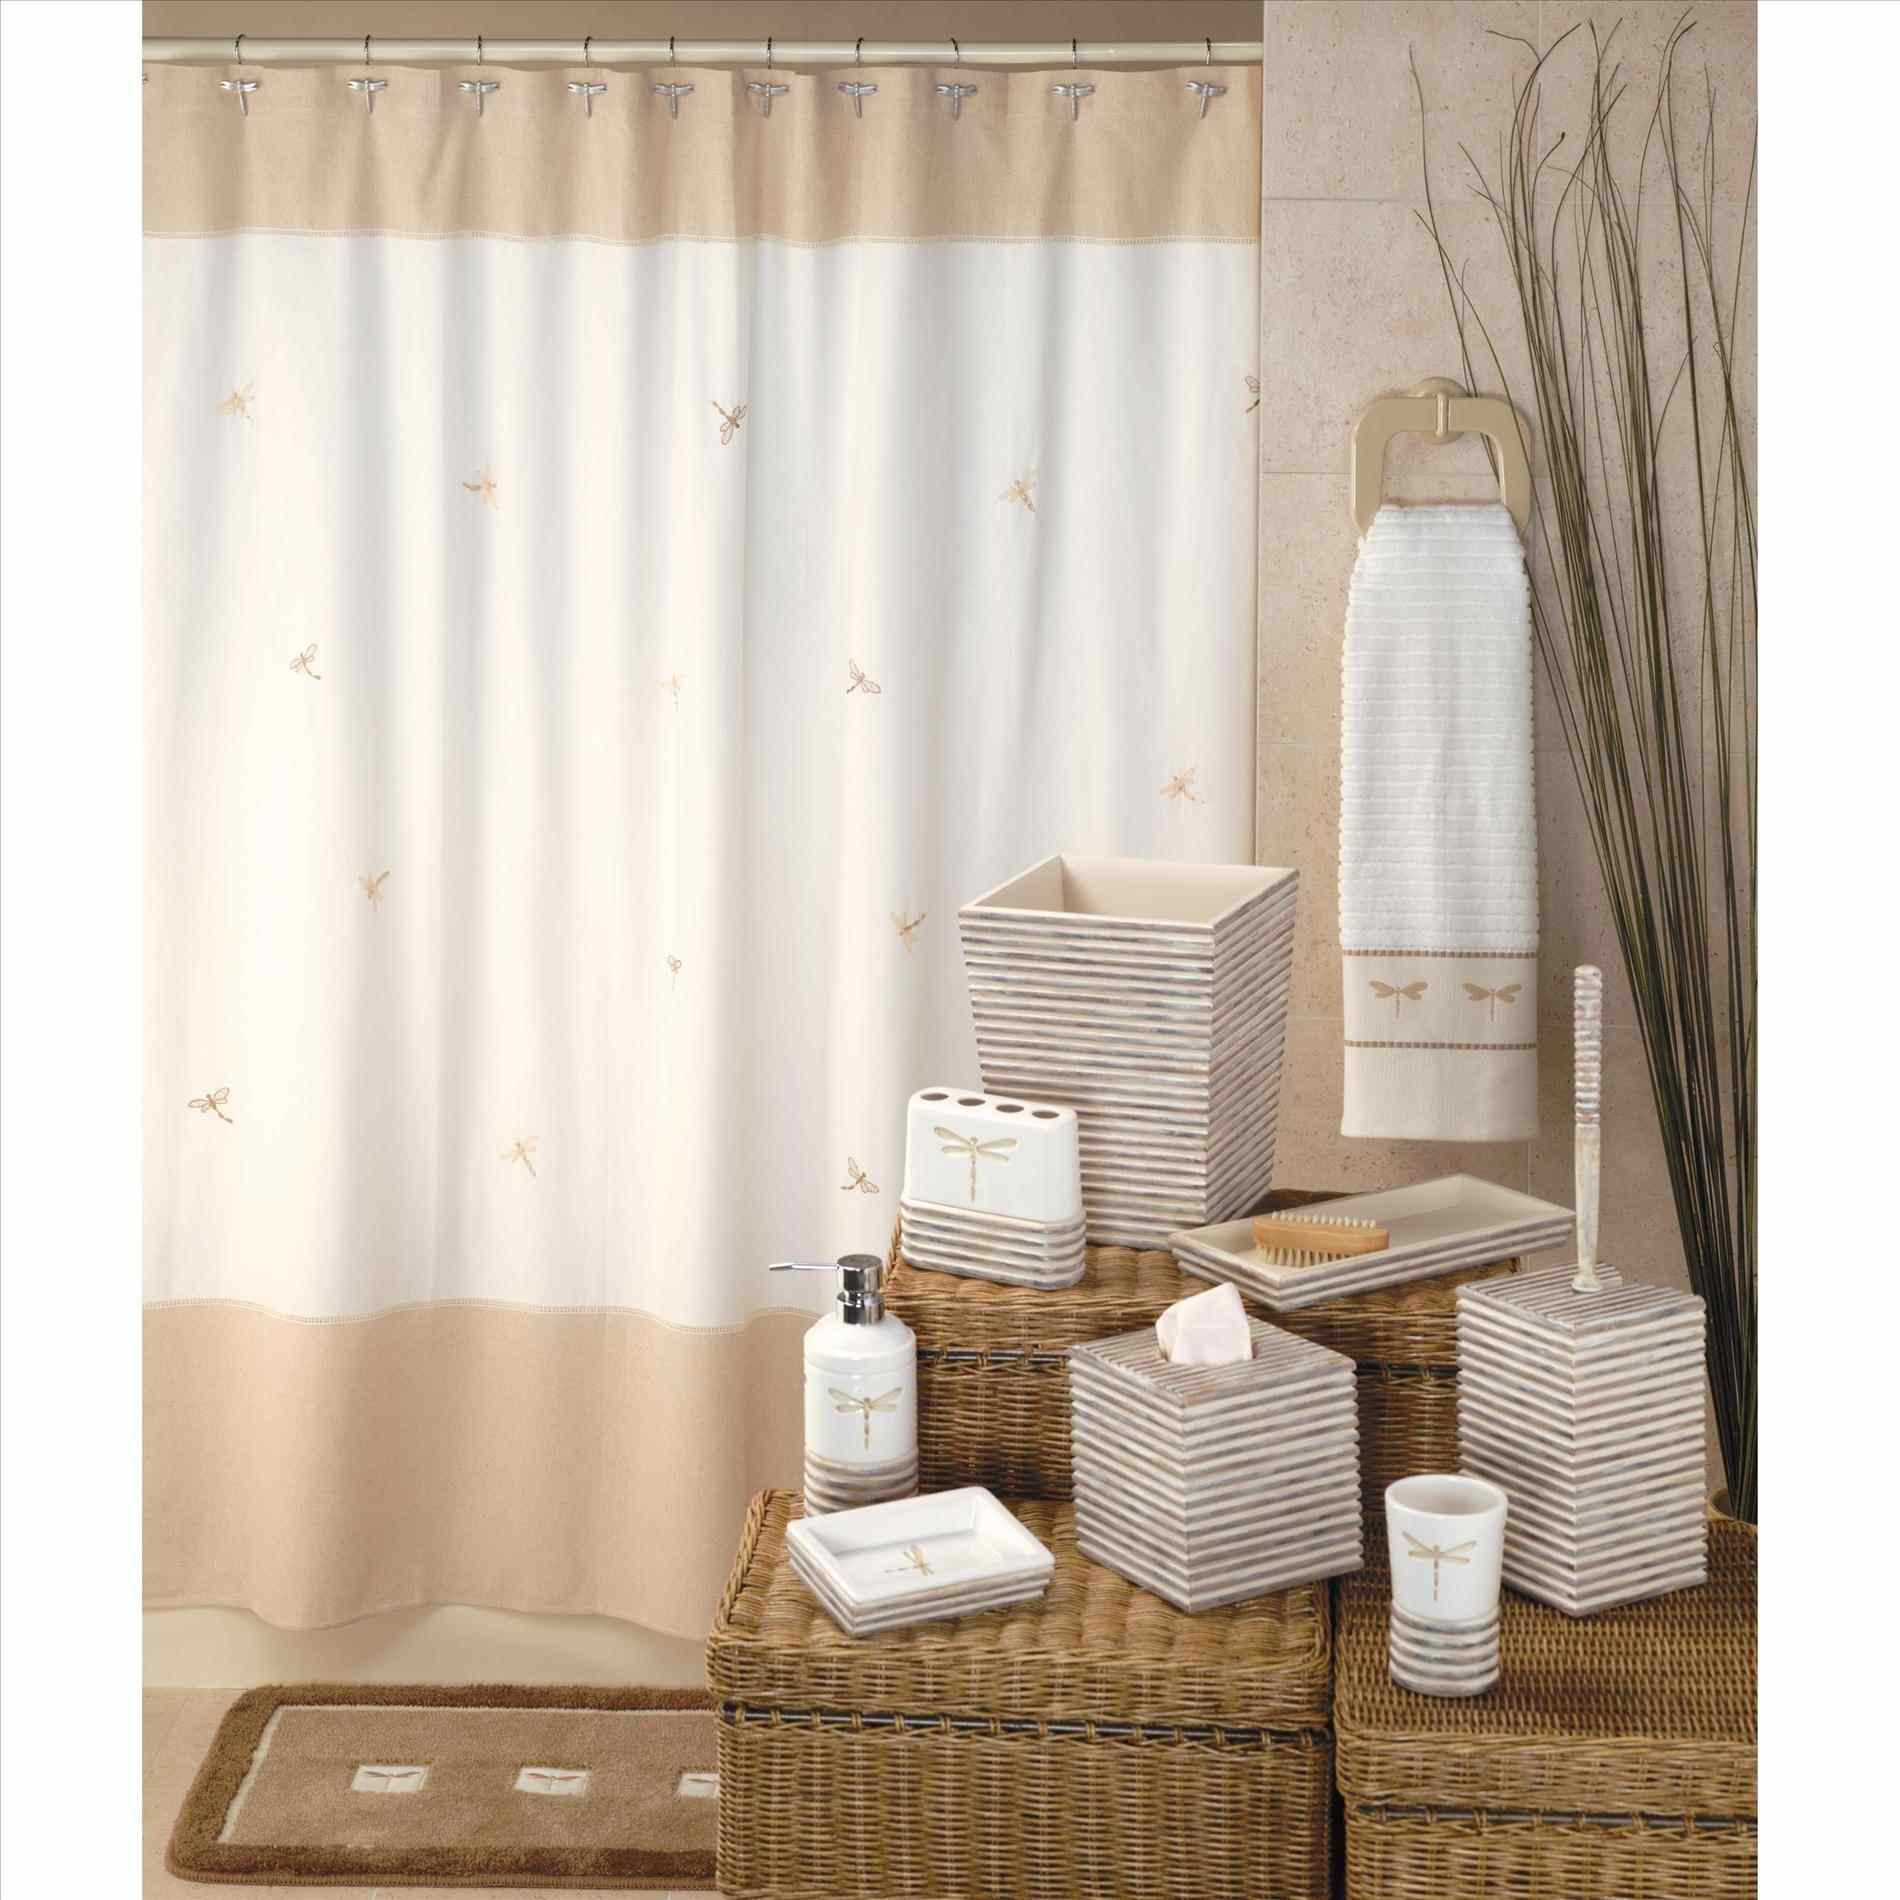 Curtains Shower Curtain And Amazoncom Hiend Accents Faux Tooled within dimensions 1900 X 1900